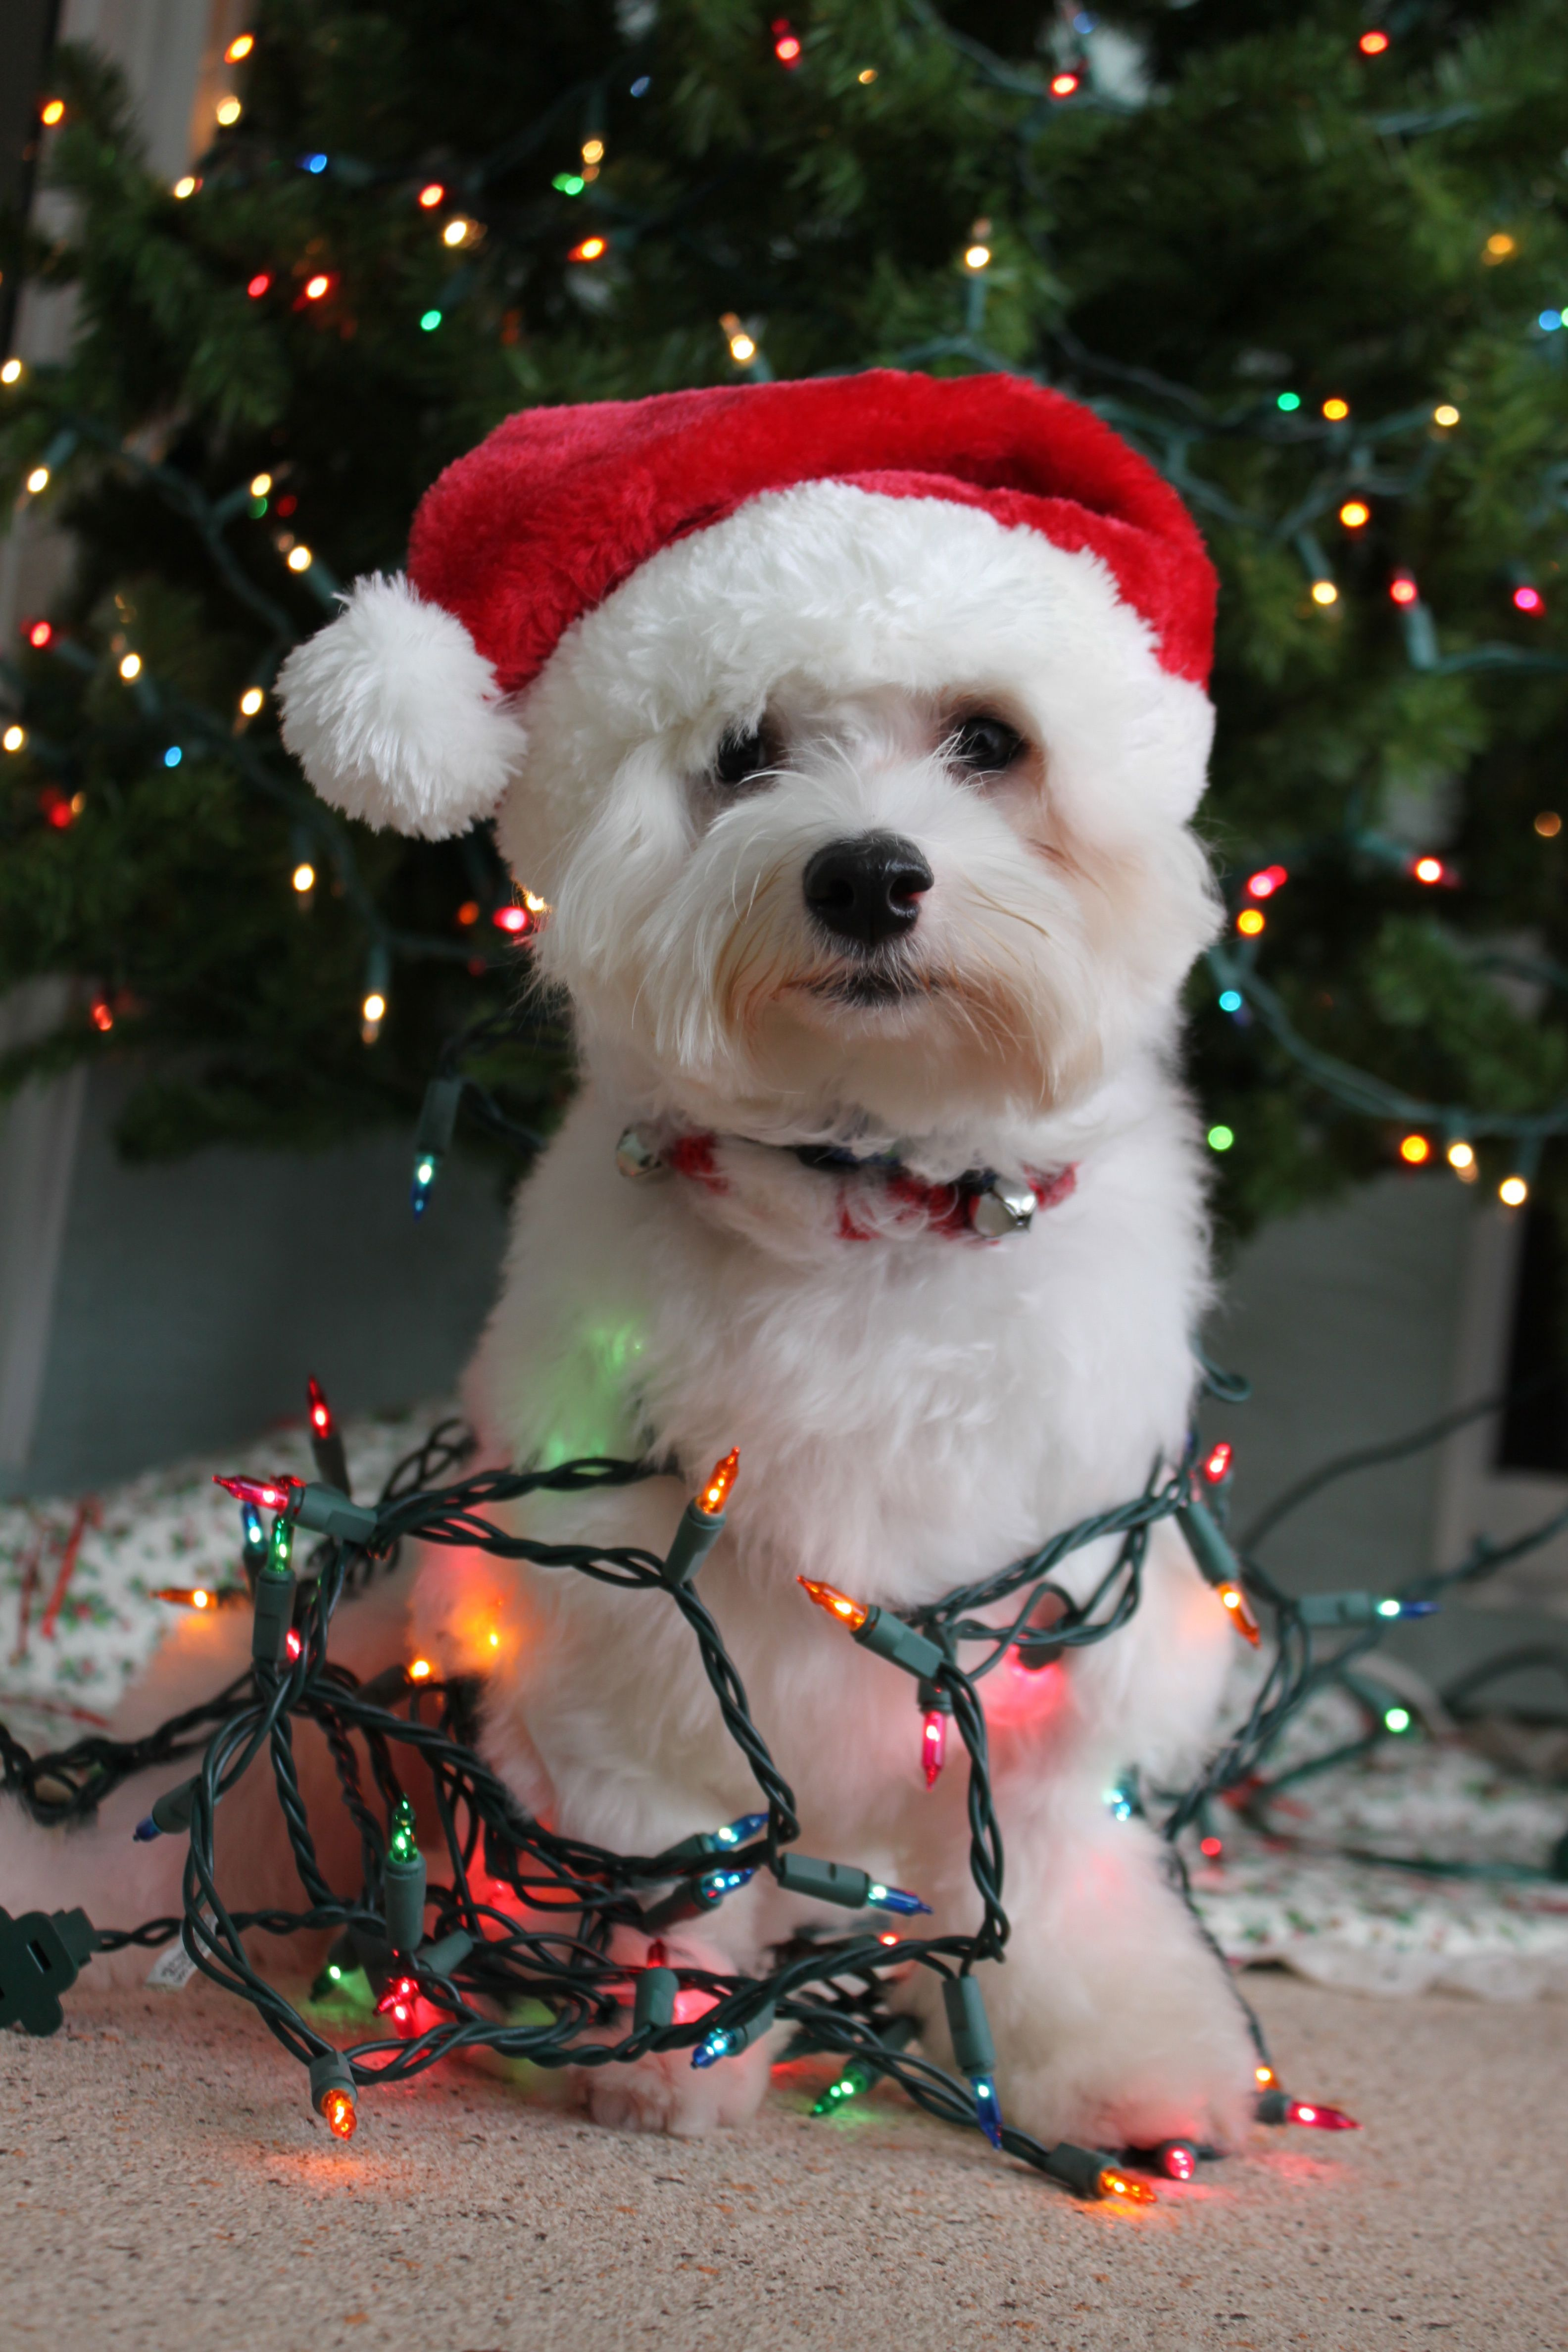 Dog Wrapped in Christmas Lights With Santa hat